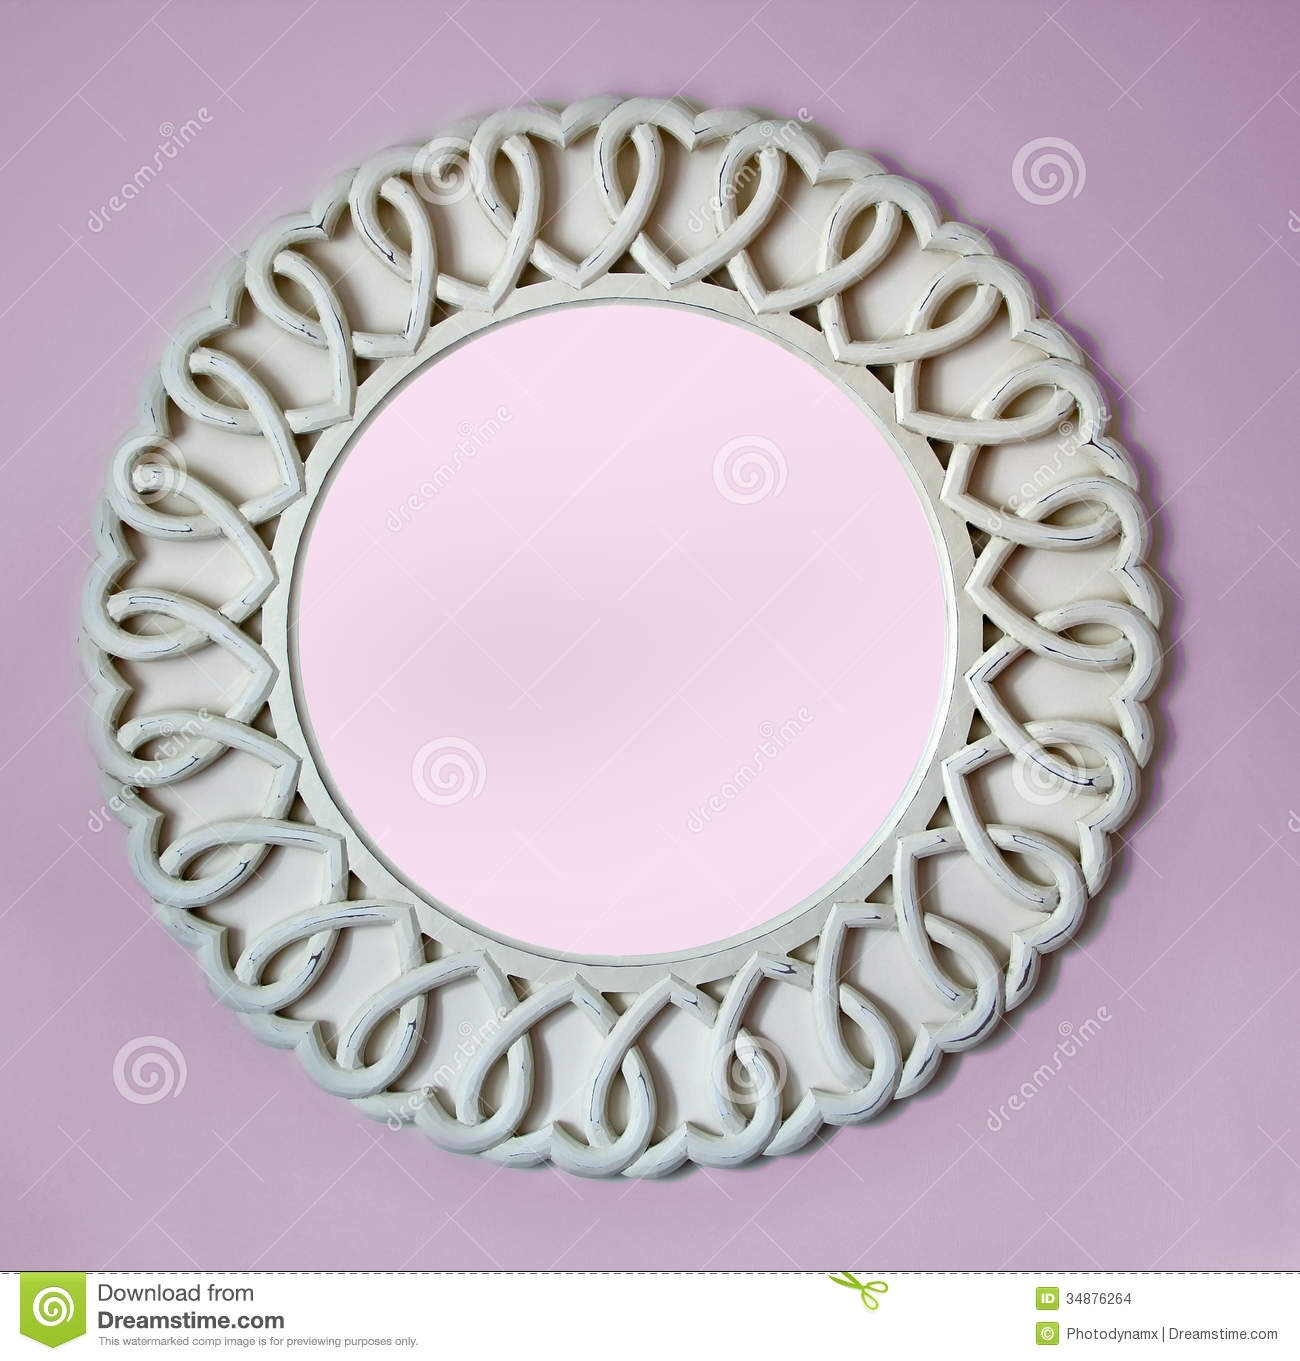 Featured Image of Round Shabby Chic Mirror